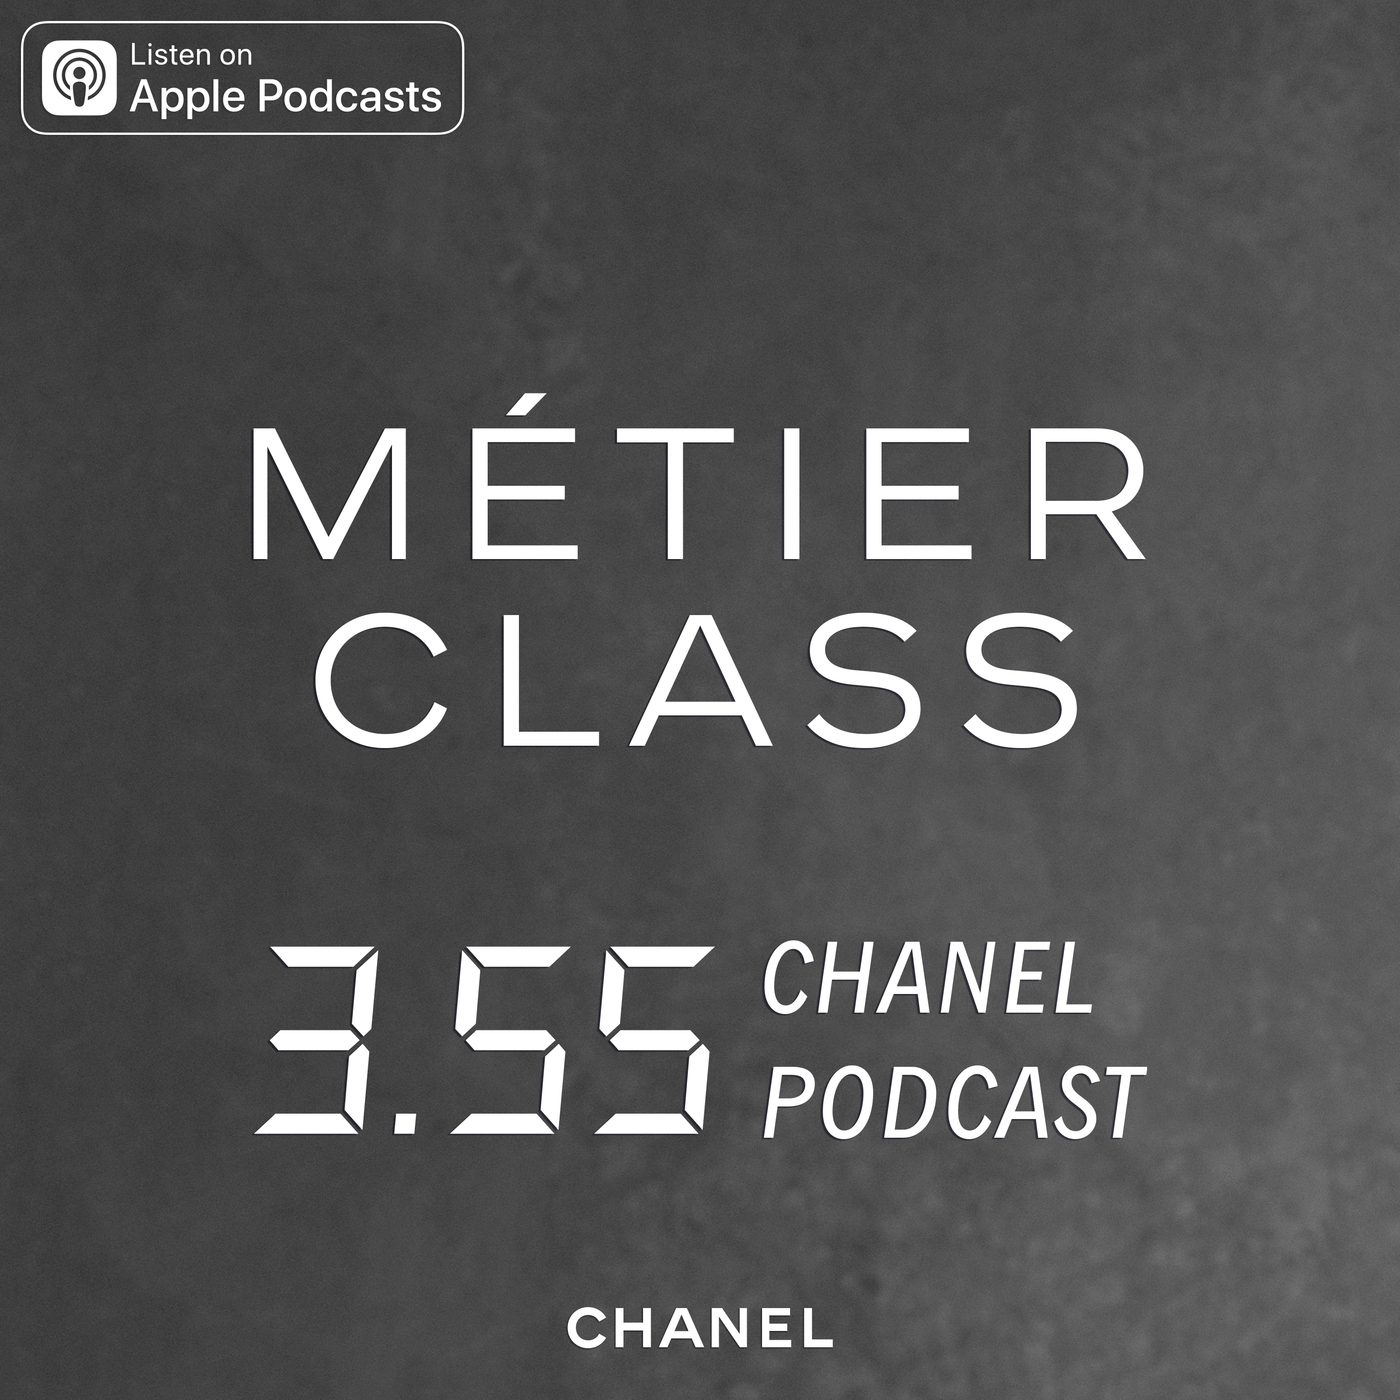 3 55 By Chanel On Apple Podcasts